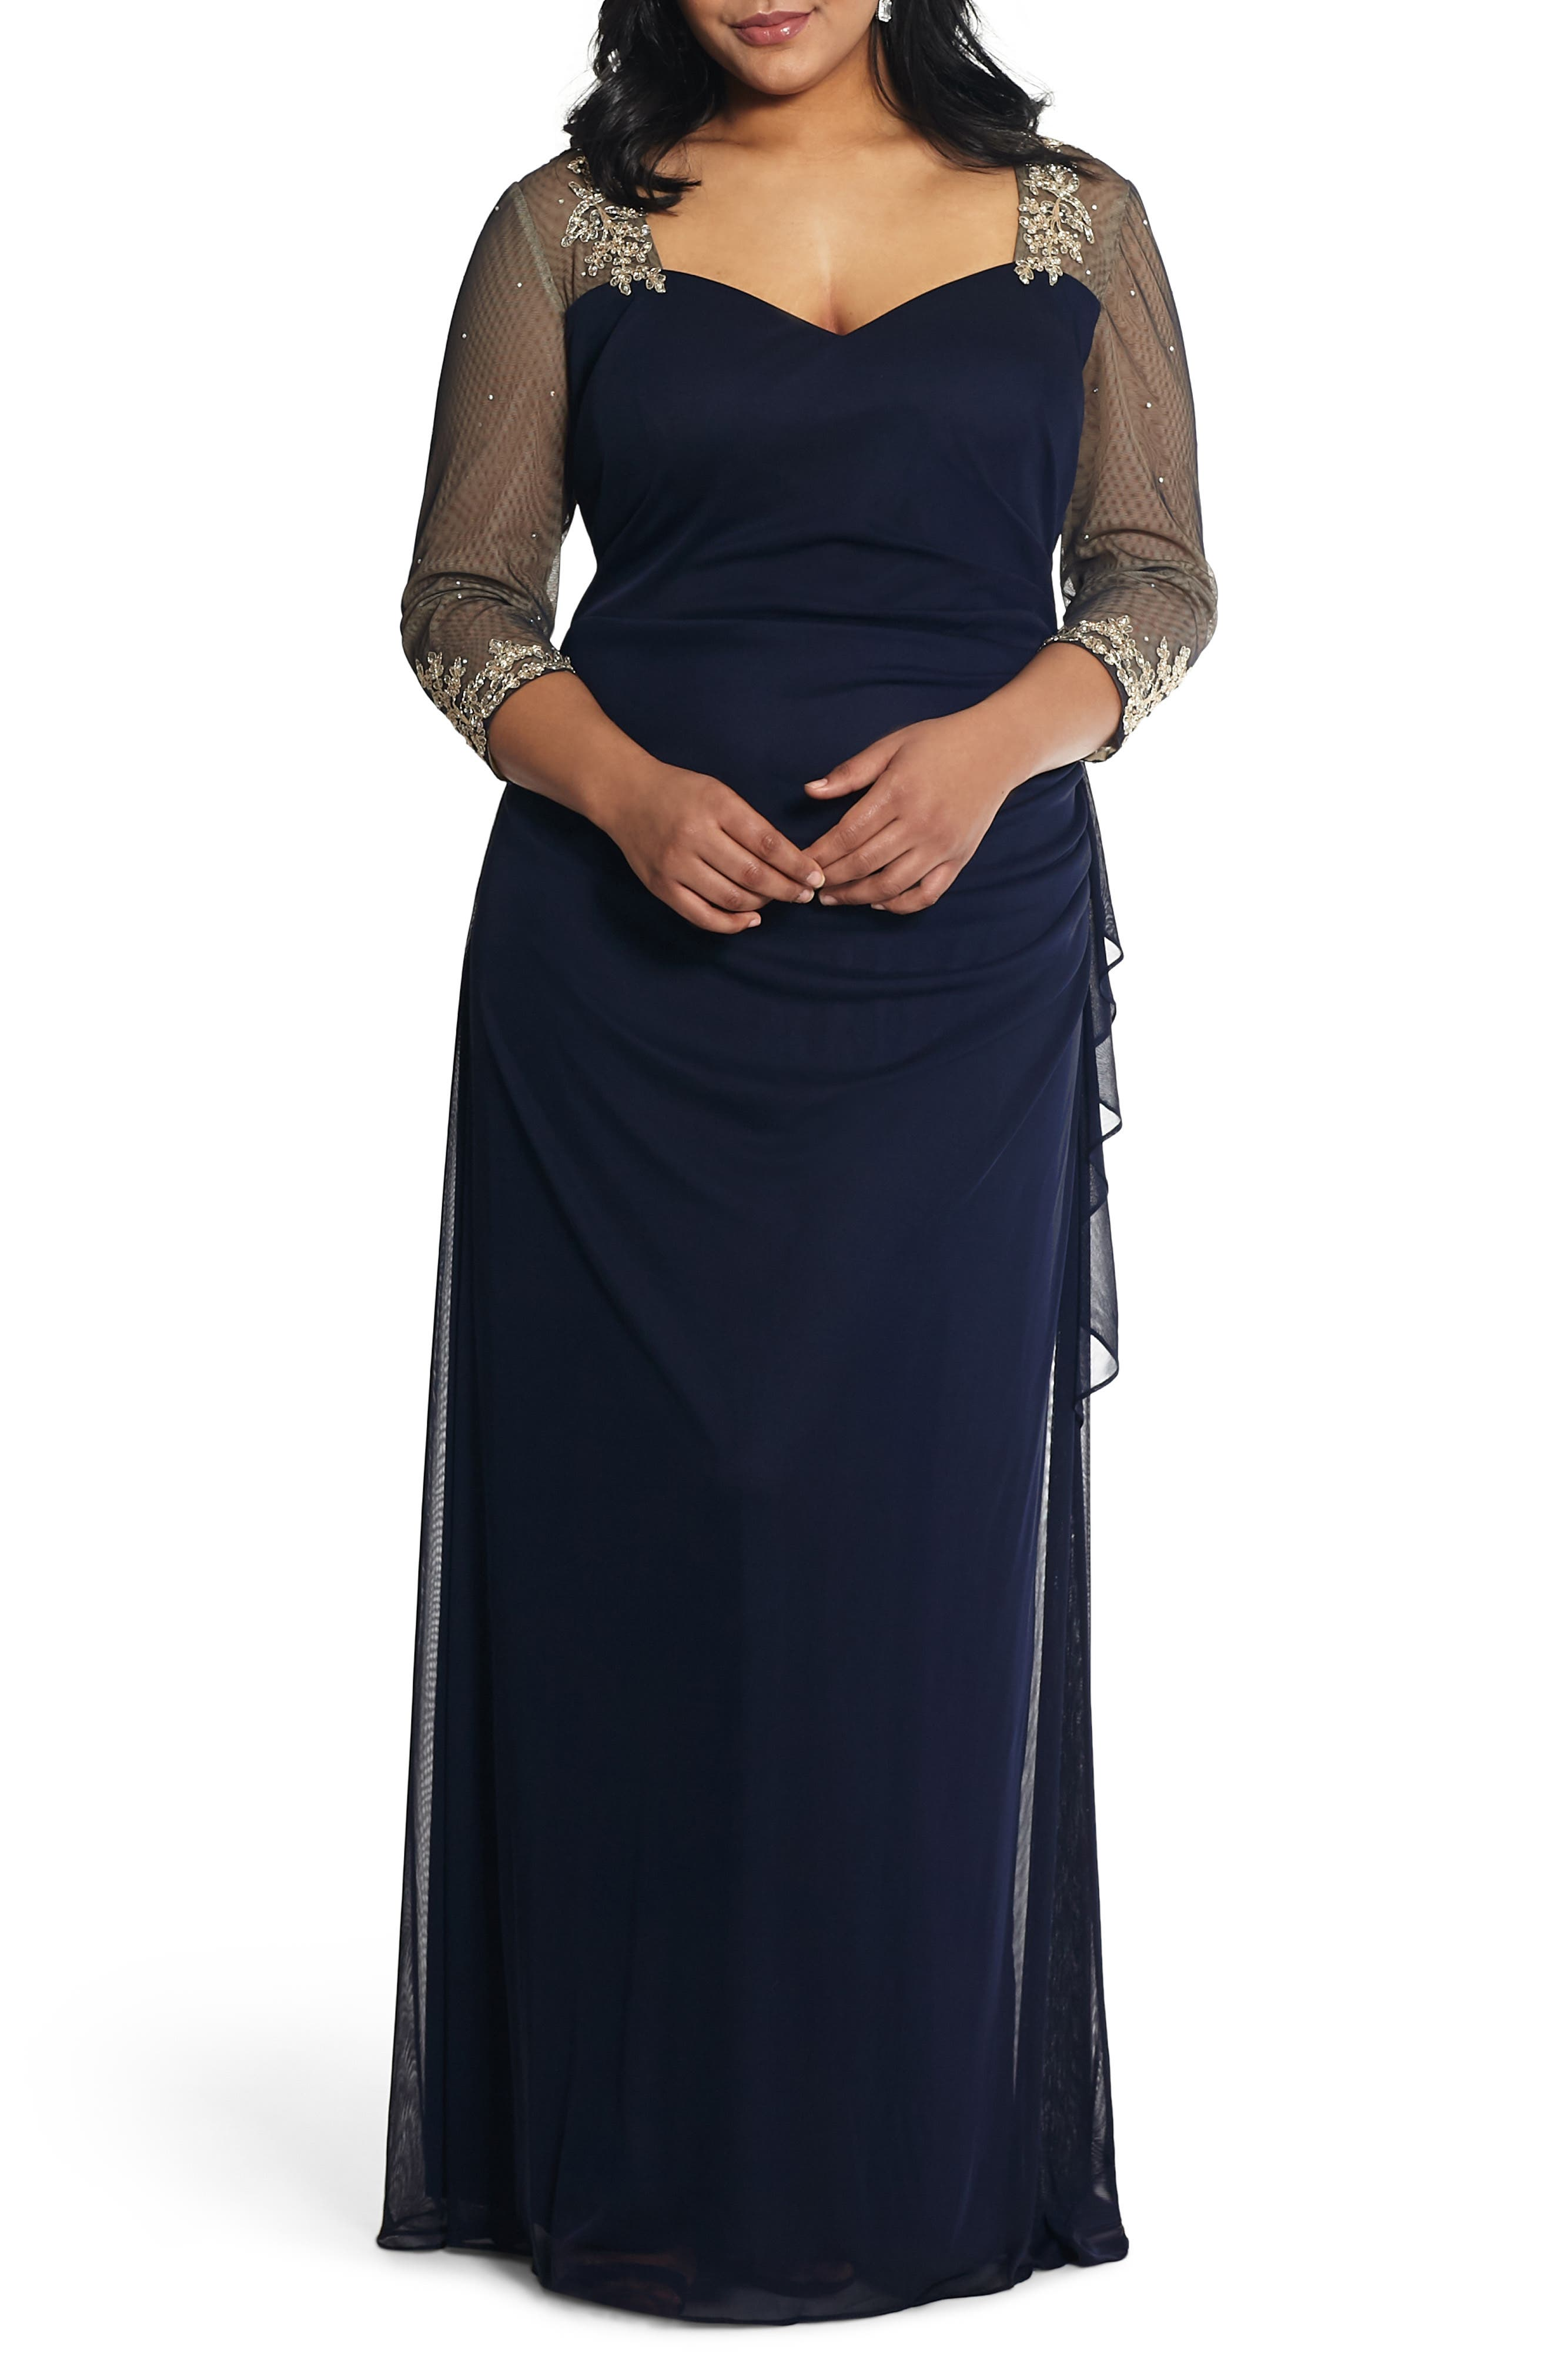 1940s Clothing Plus Size Womens Xscape Embellished Illusion Sleeve Ruched Gown $238.00 AT vintagedancer.com